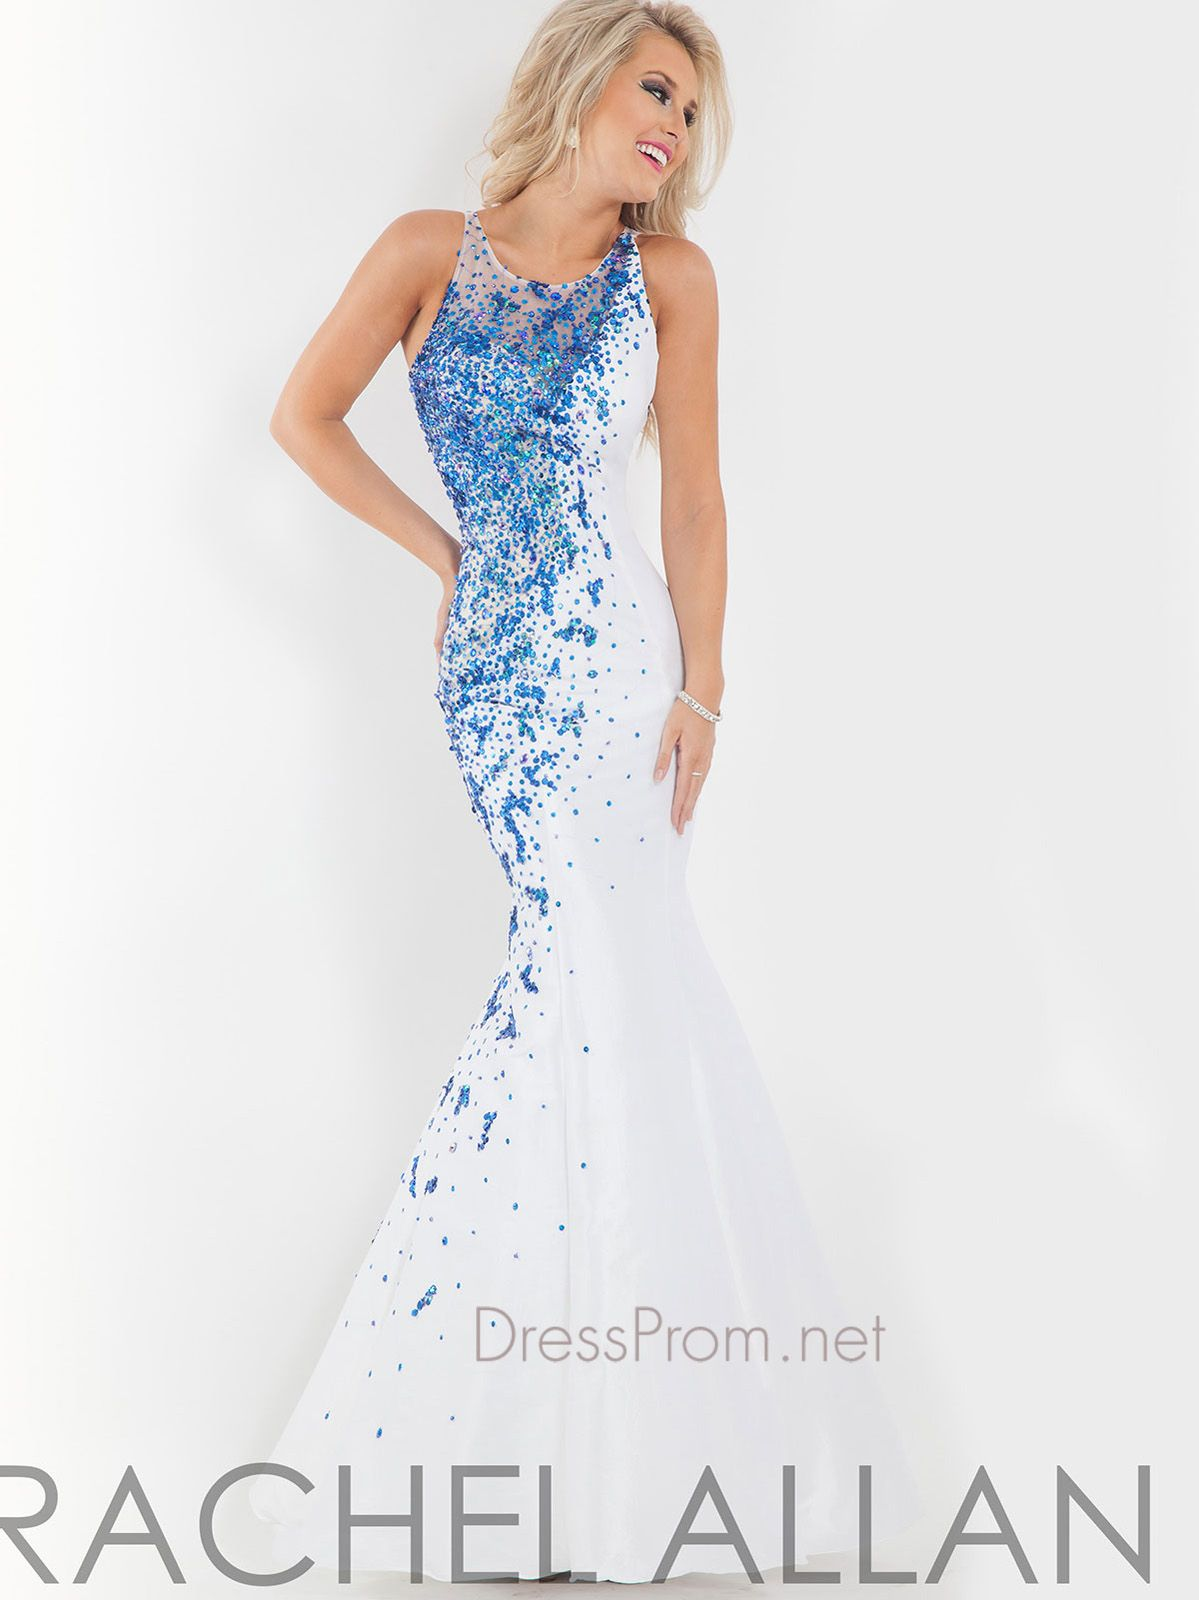 This dazzling Rachel Allan prom dress will make you sparkle all ...